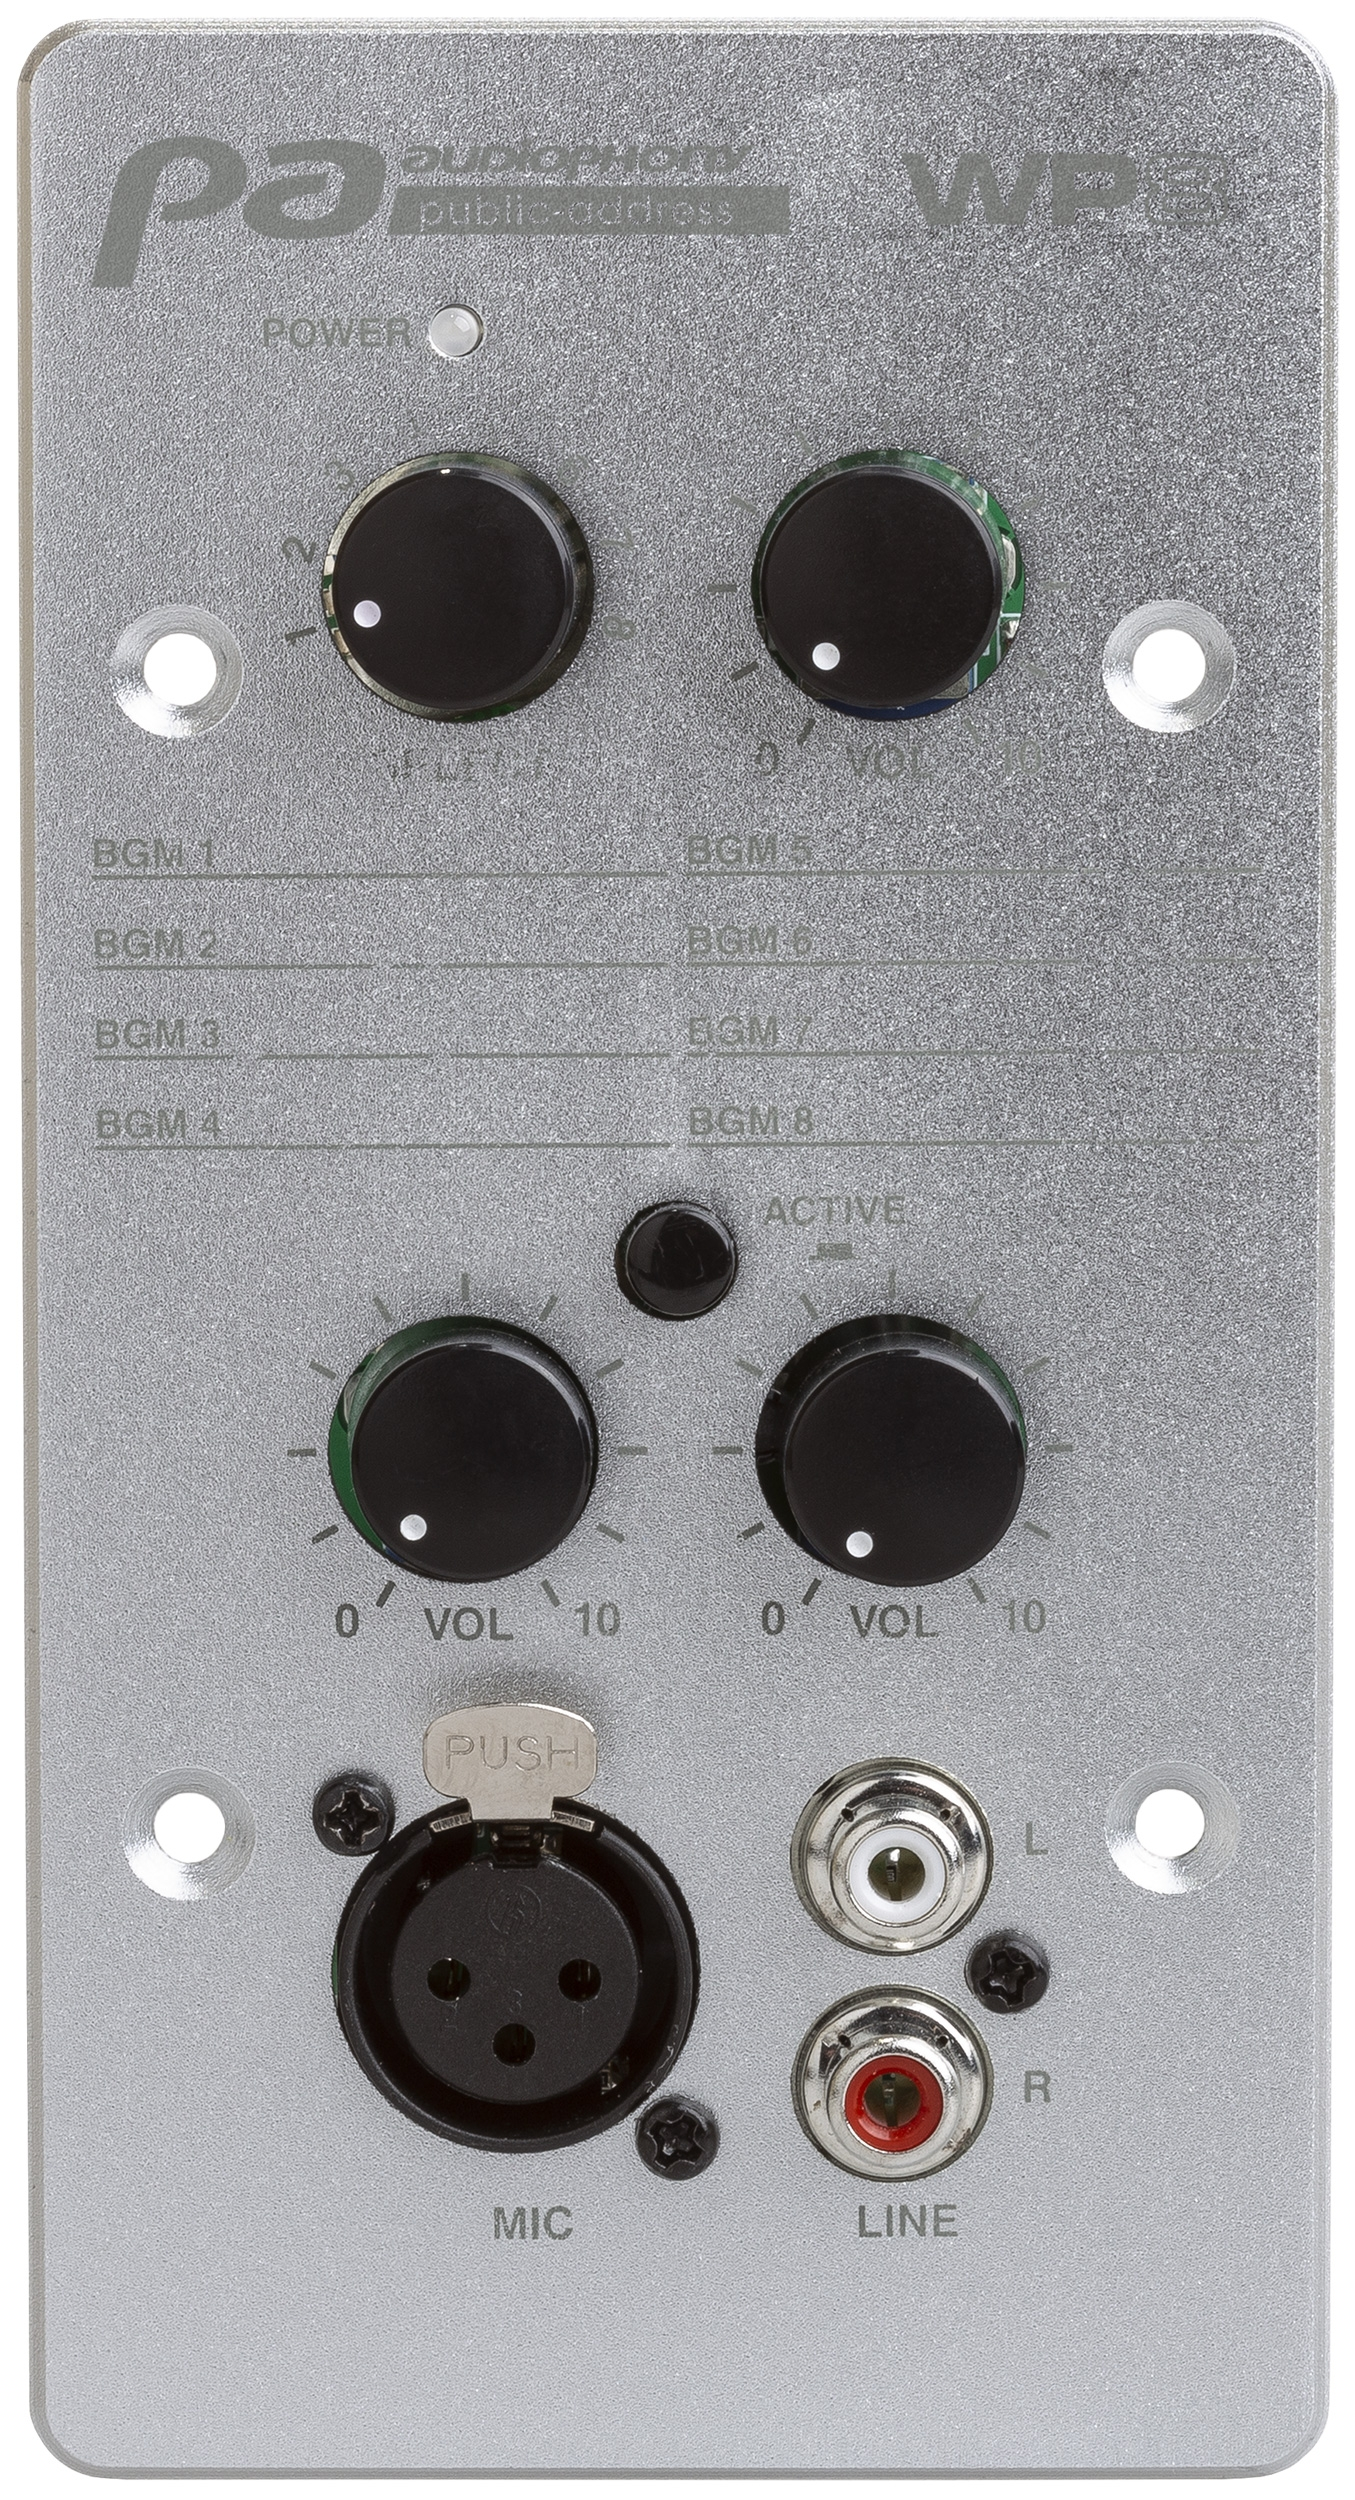 Wall controller with source selector and MIC/line input for matrix